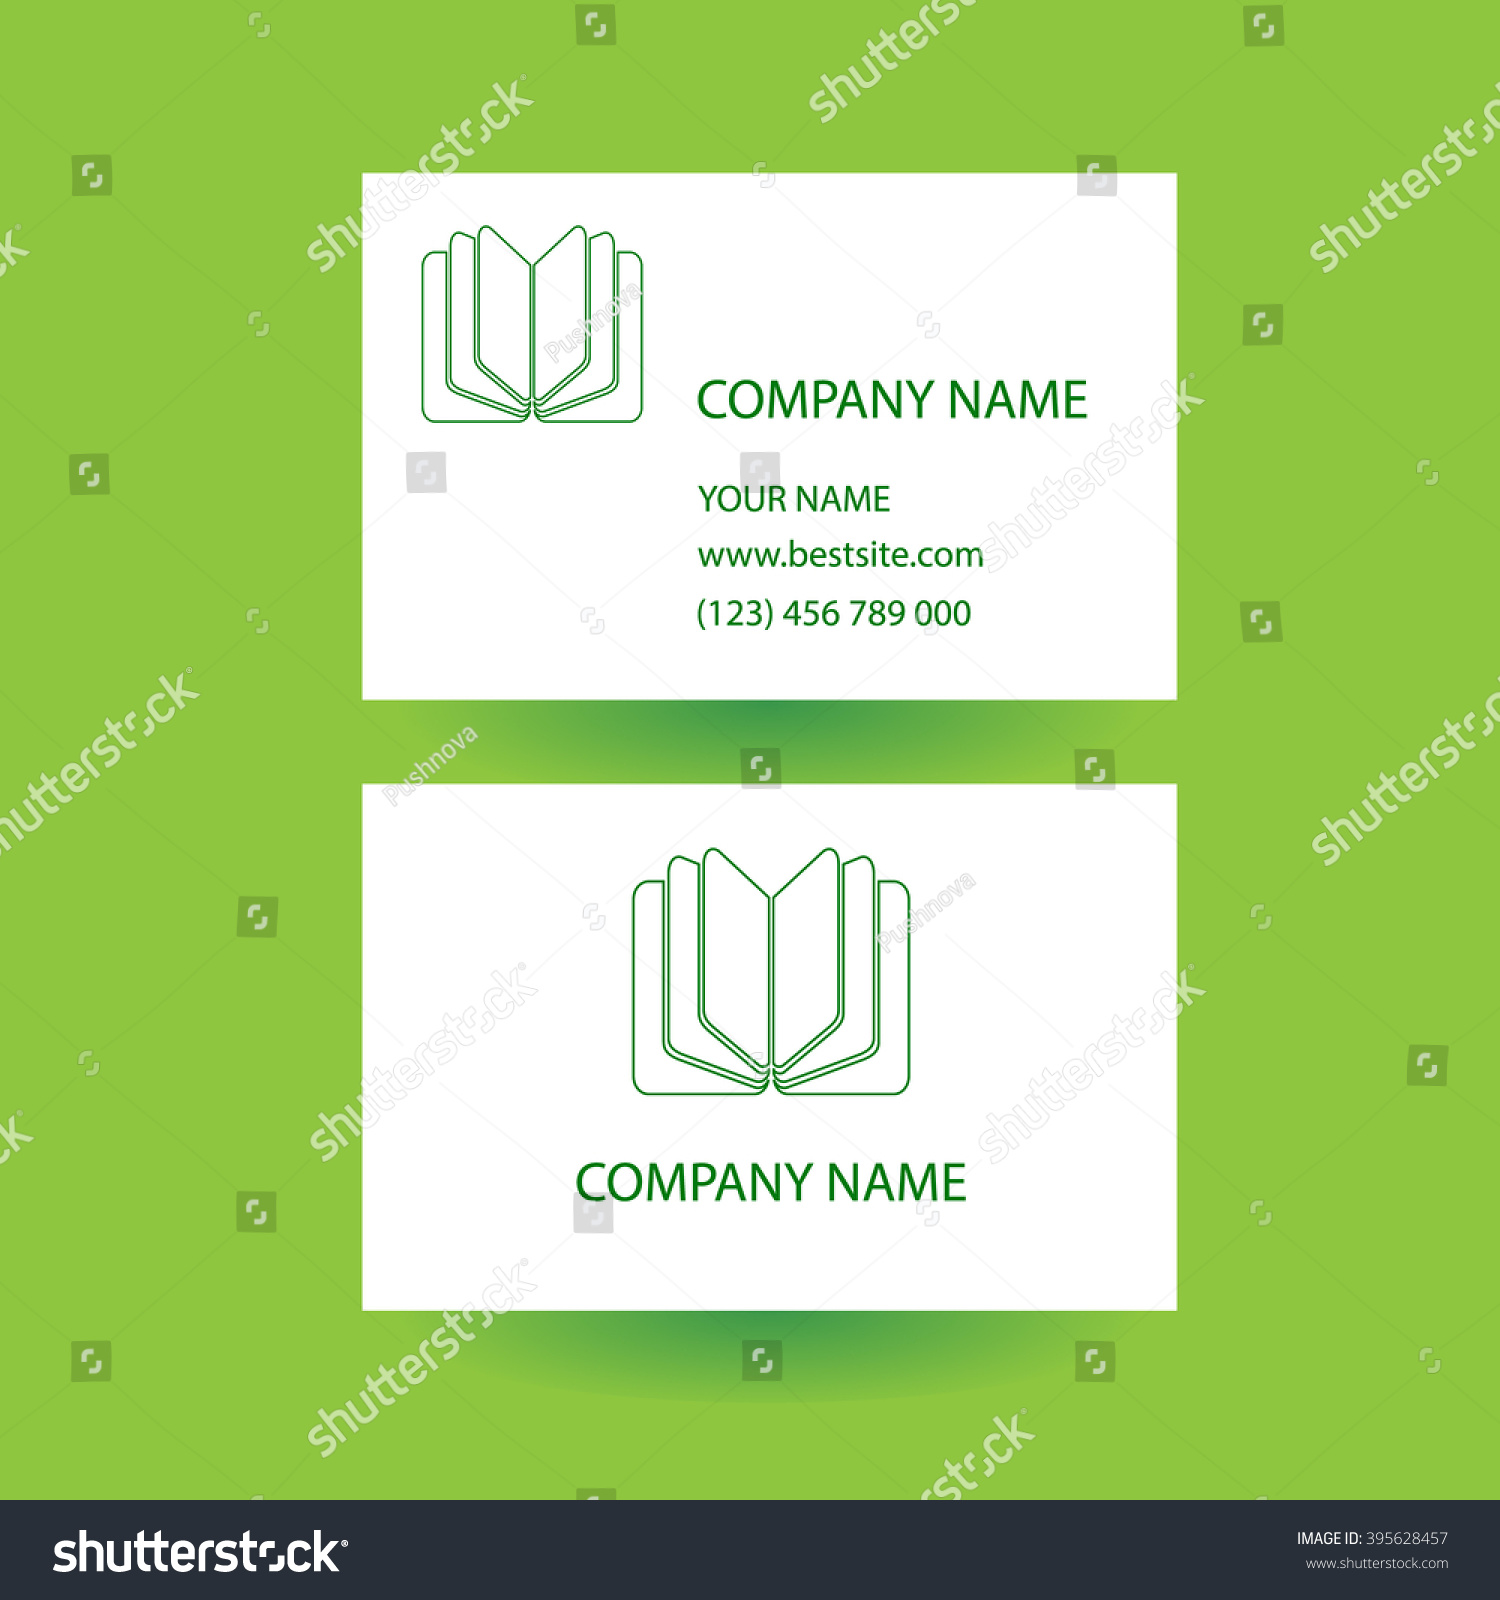 business card logo business card concept stock vector business card with logo business card concept